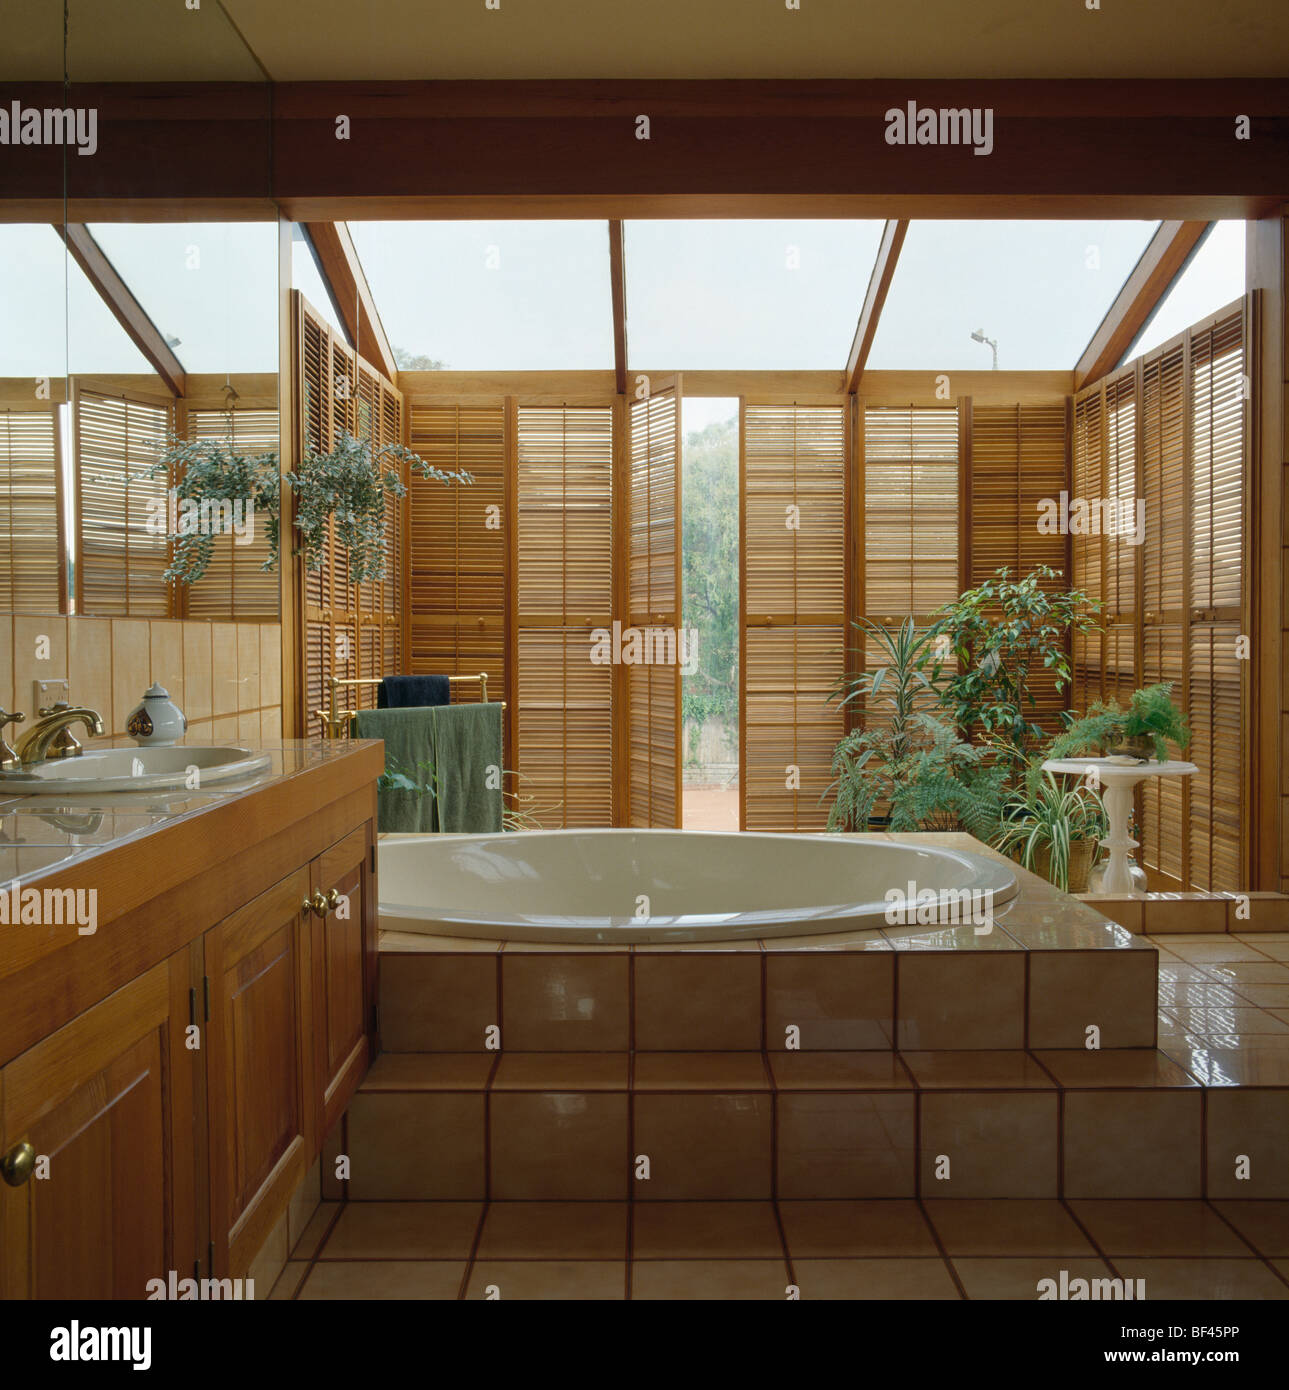 Delightful Wooden Louvre Shutters In Modern Glass Bathroom Extension With Oval Bath